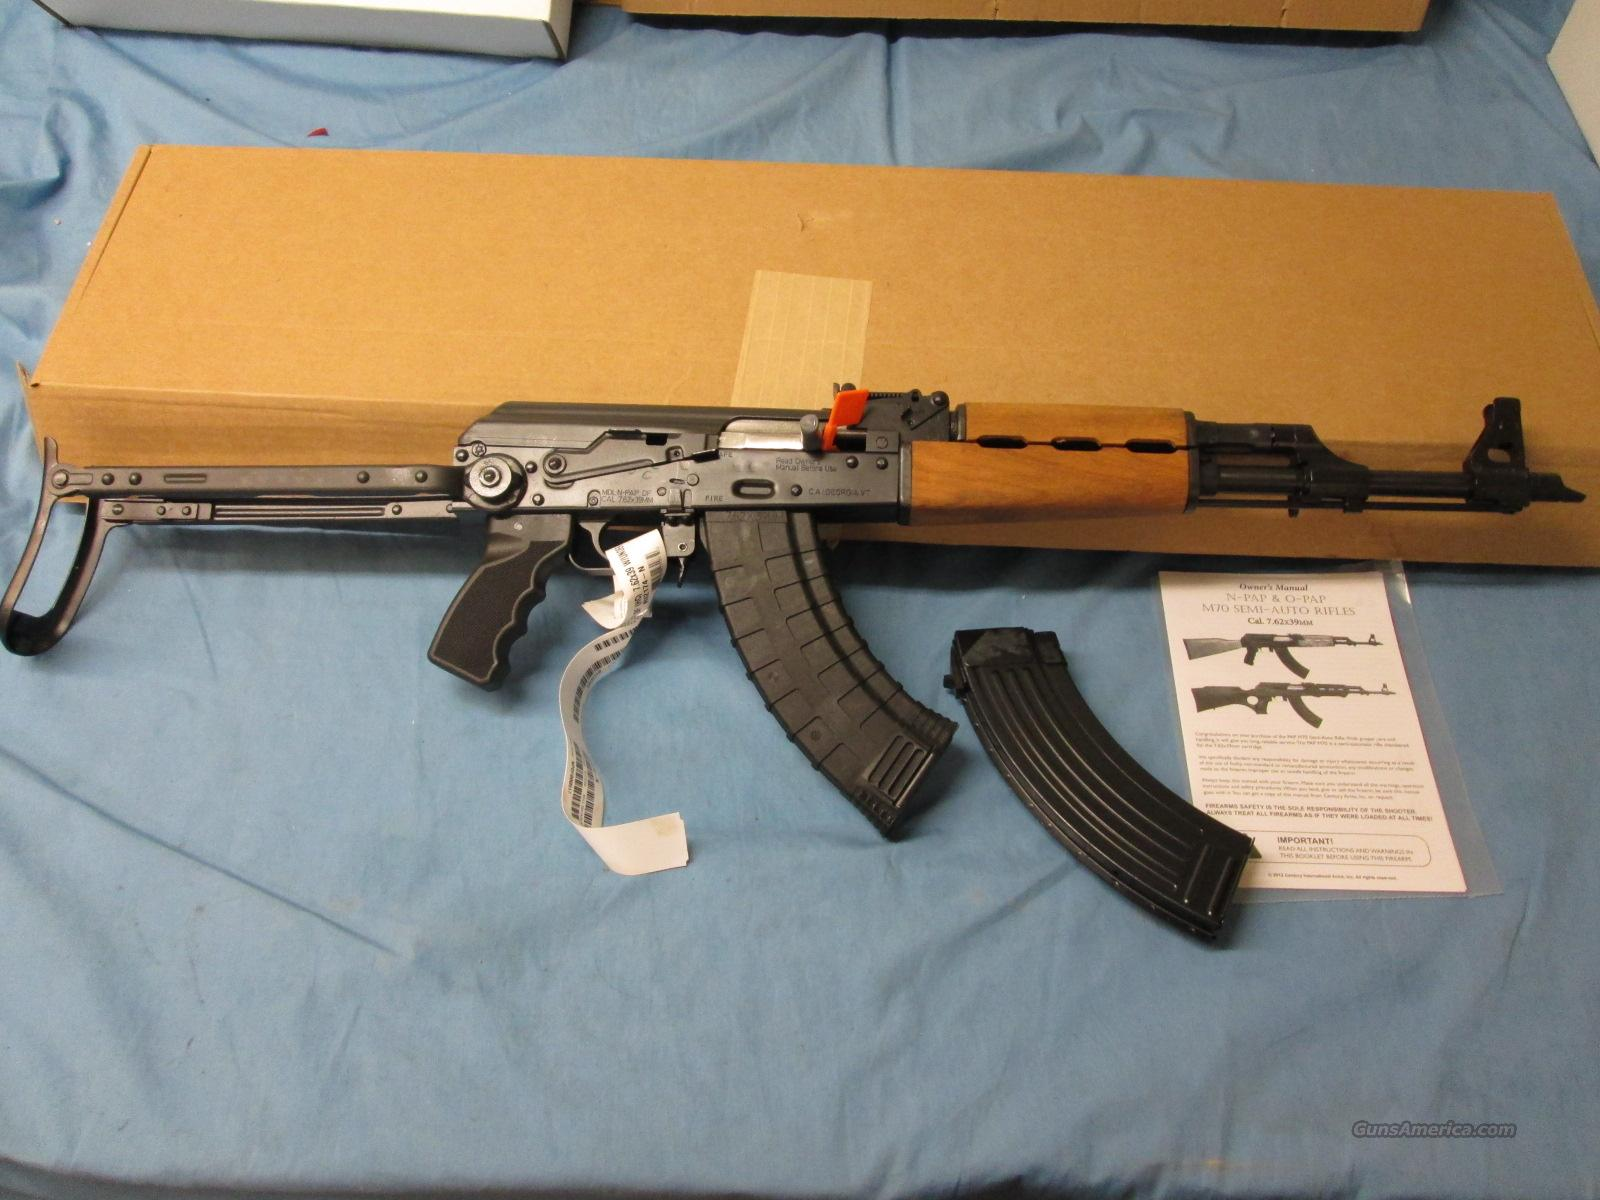 SALE! Zastava N-Pap DF AK-47 Underfolder  Guns > Rifles > AK-47 Rifles (and copies) > Folding Stock